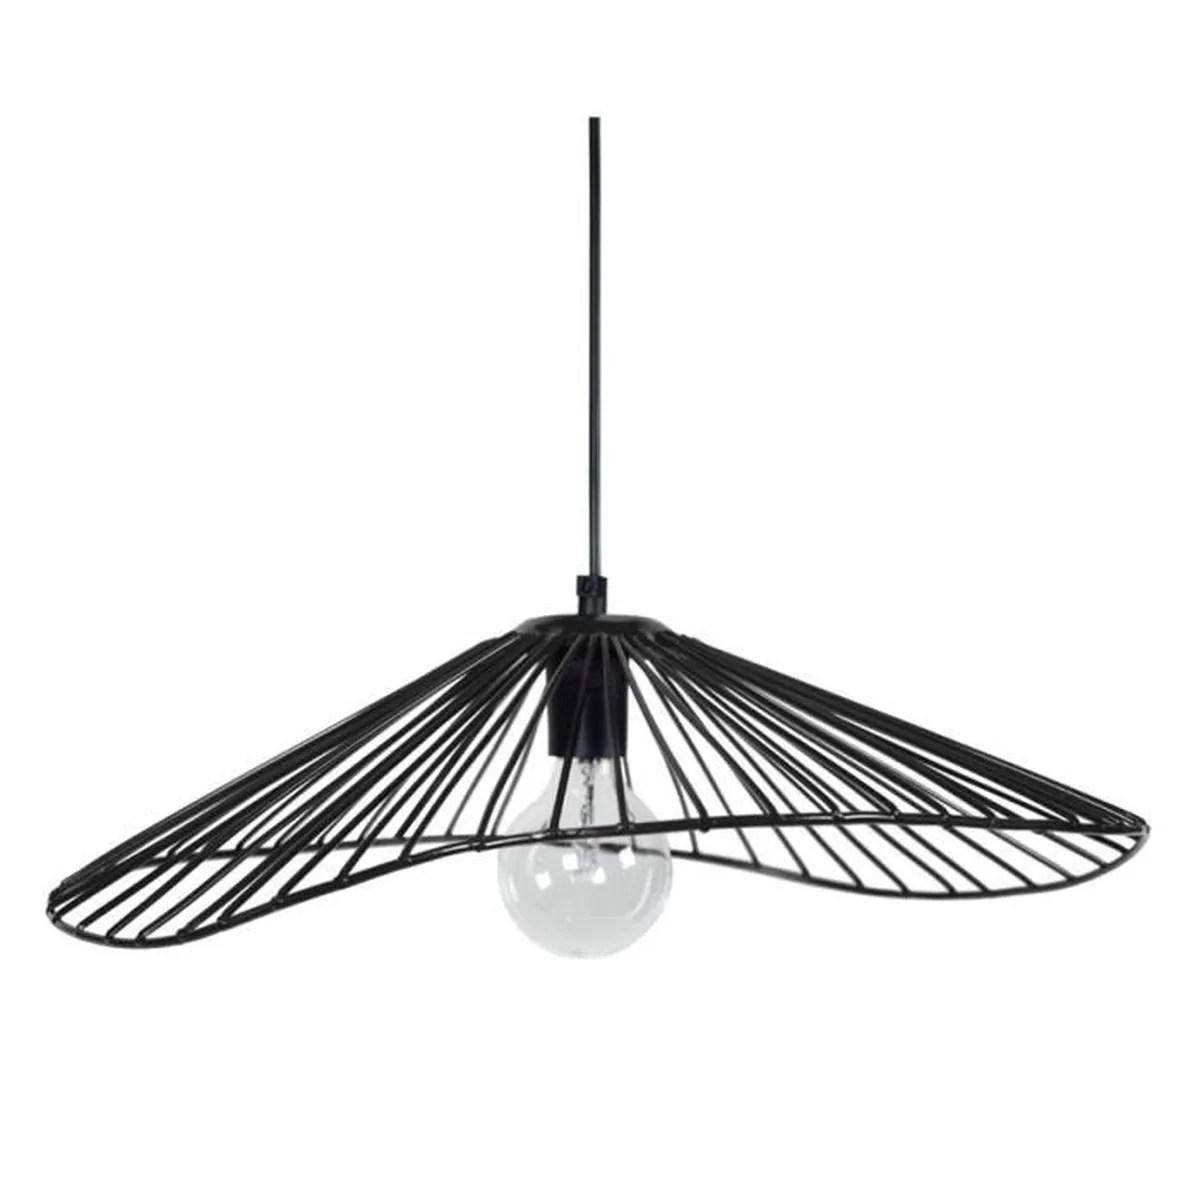 Lustre Spot Luminaire Suspension Leroy Merlin Maison Design Nazpo